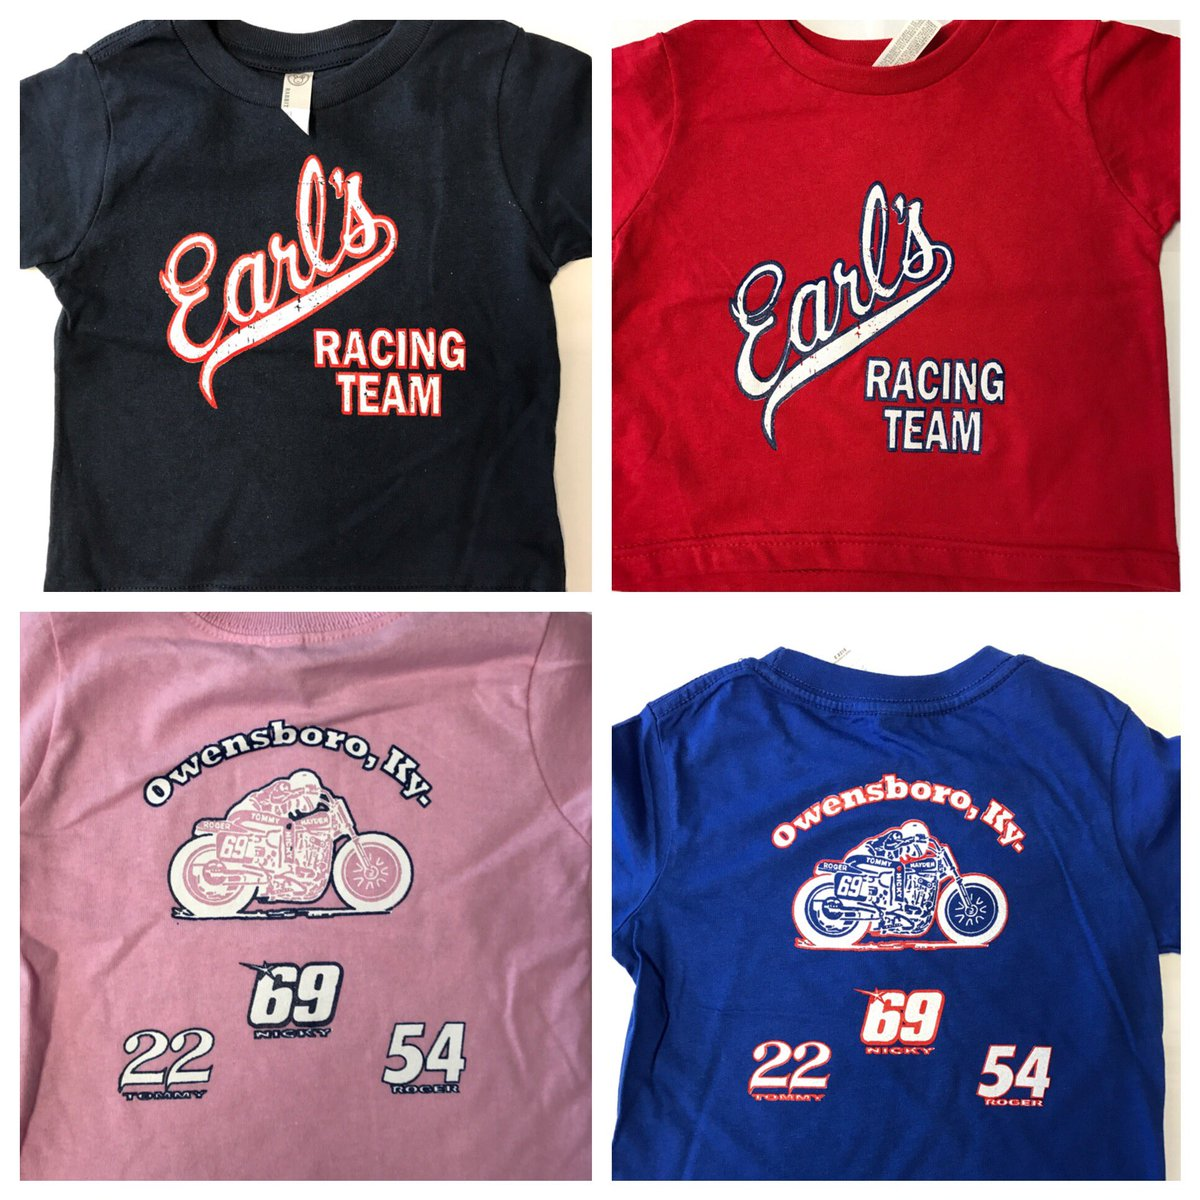 New kids Earl's Racing Team shirts now available! Colors: Red, Blue, Navy or Pink. Sizes: 2T, 3T, 4T and 5-6.